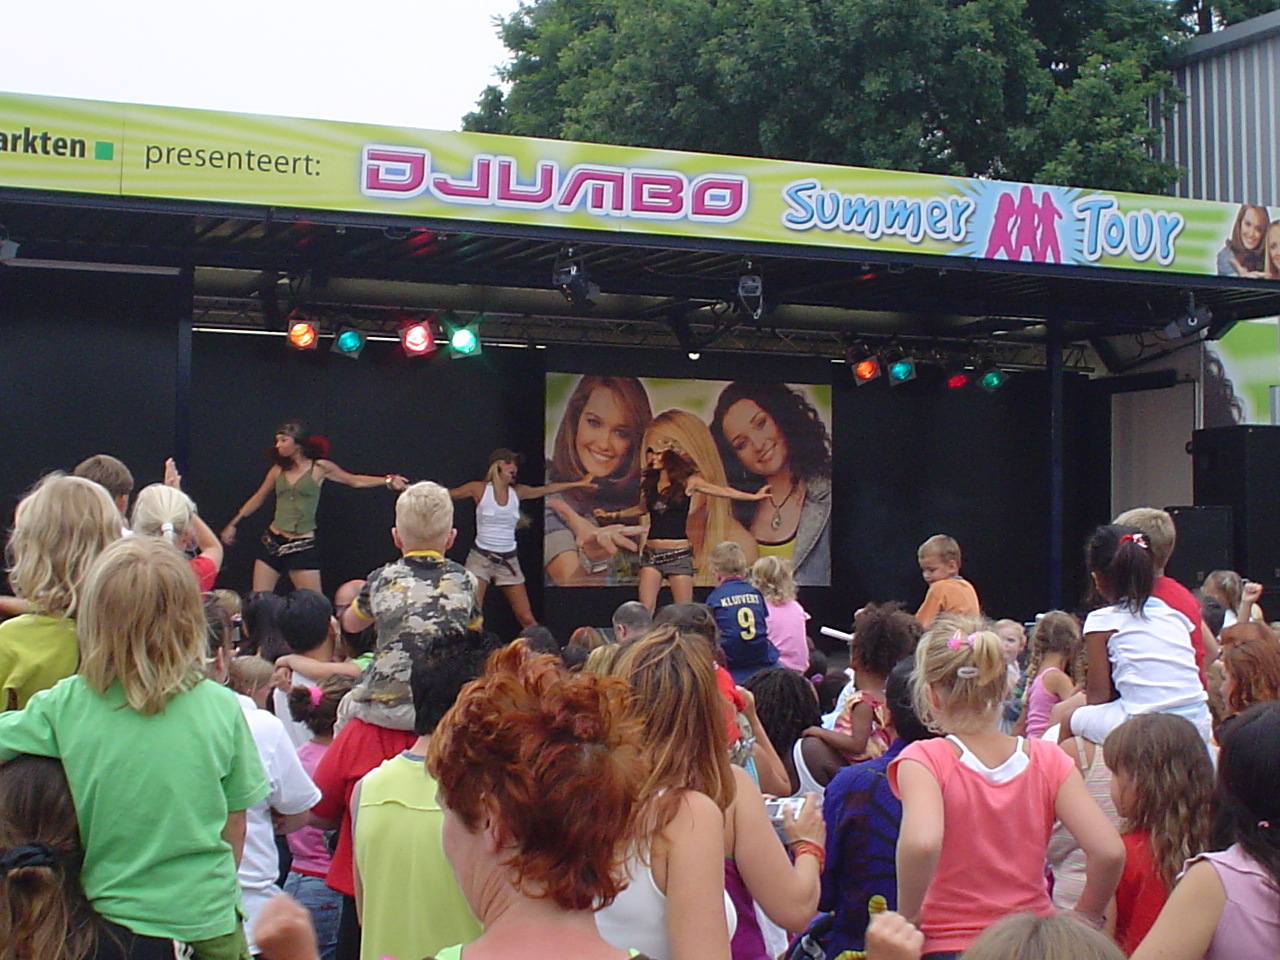 JB Productions & Jumbo Supermarkten ontwikkelen Djumbo Summer Tour